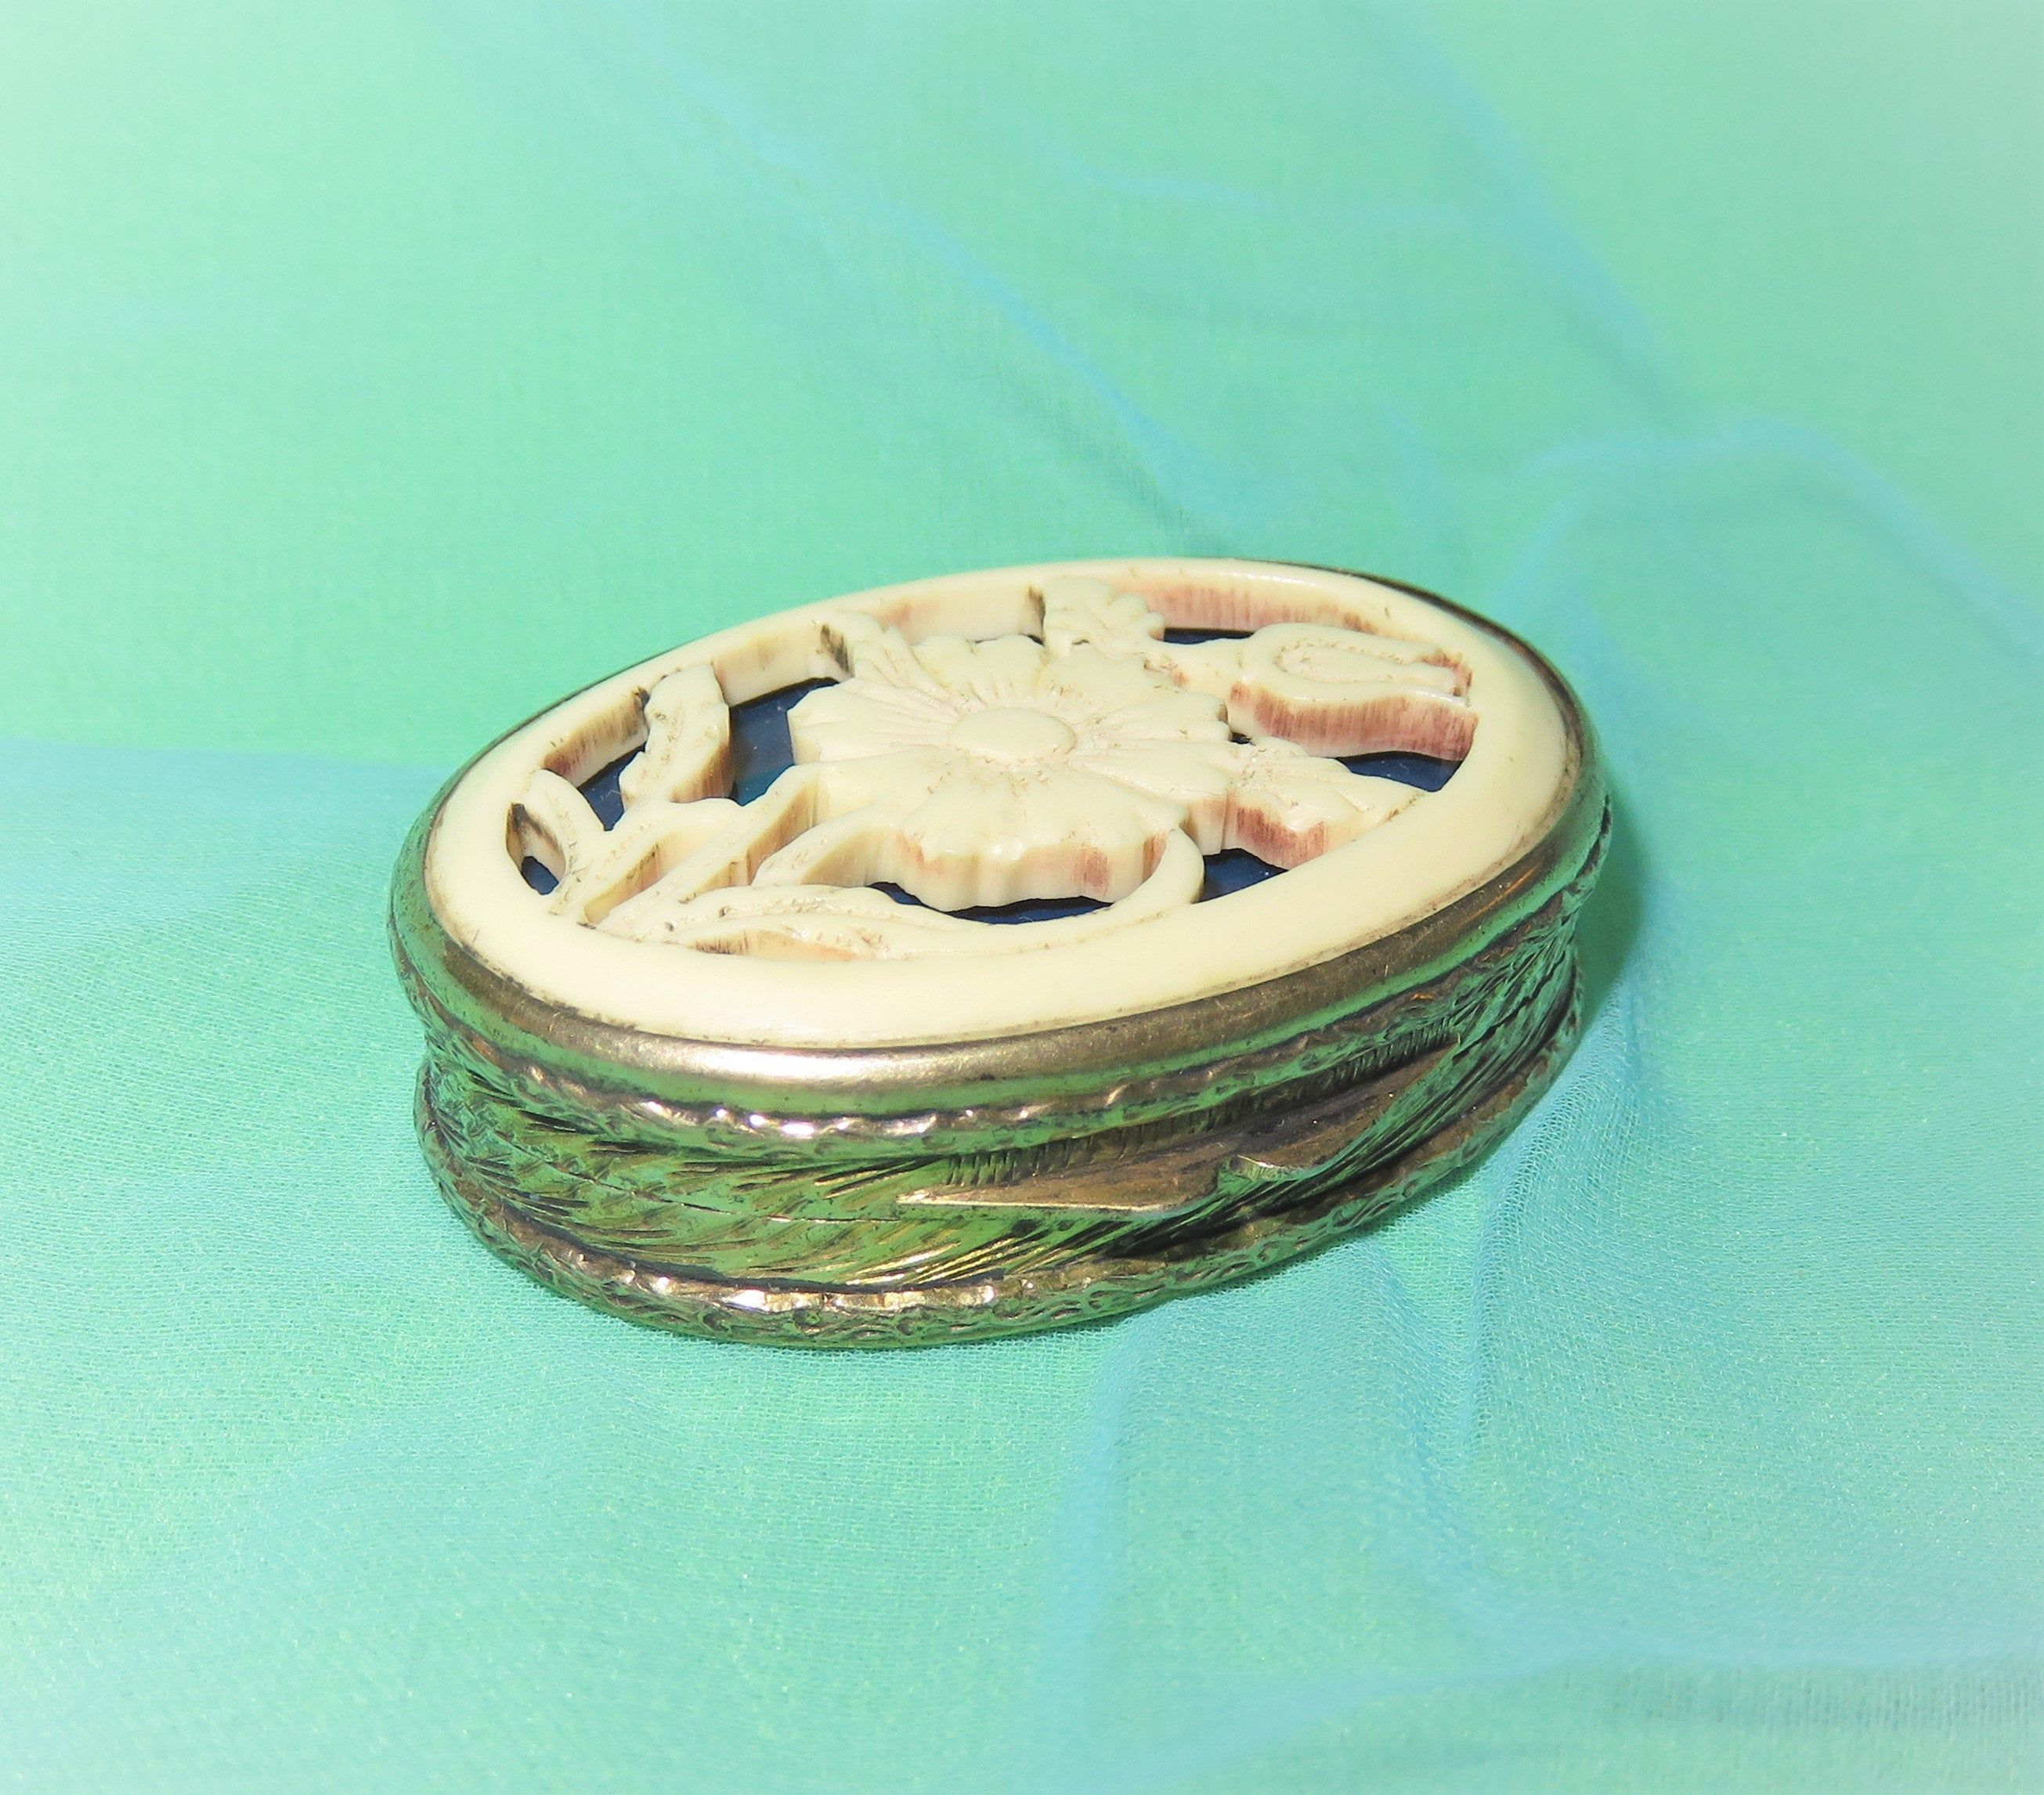 Antique 800 Silver Vermeil Chased Pill Box Snuff Box Etsy 800 Silver Silver Antique Silver